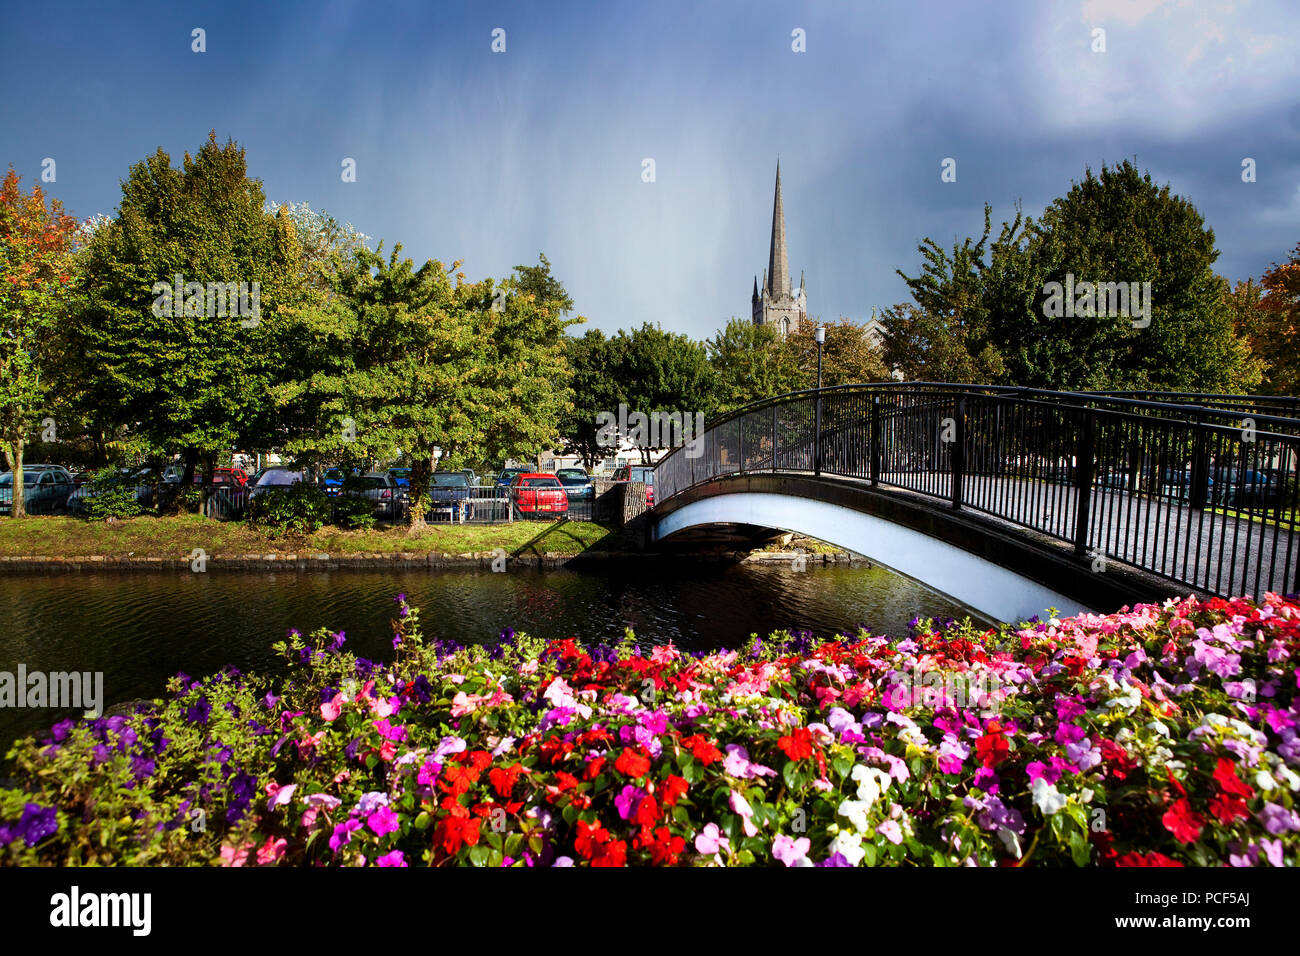 Flowers and footbridge over Newry canal - Stock Image